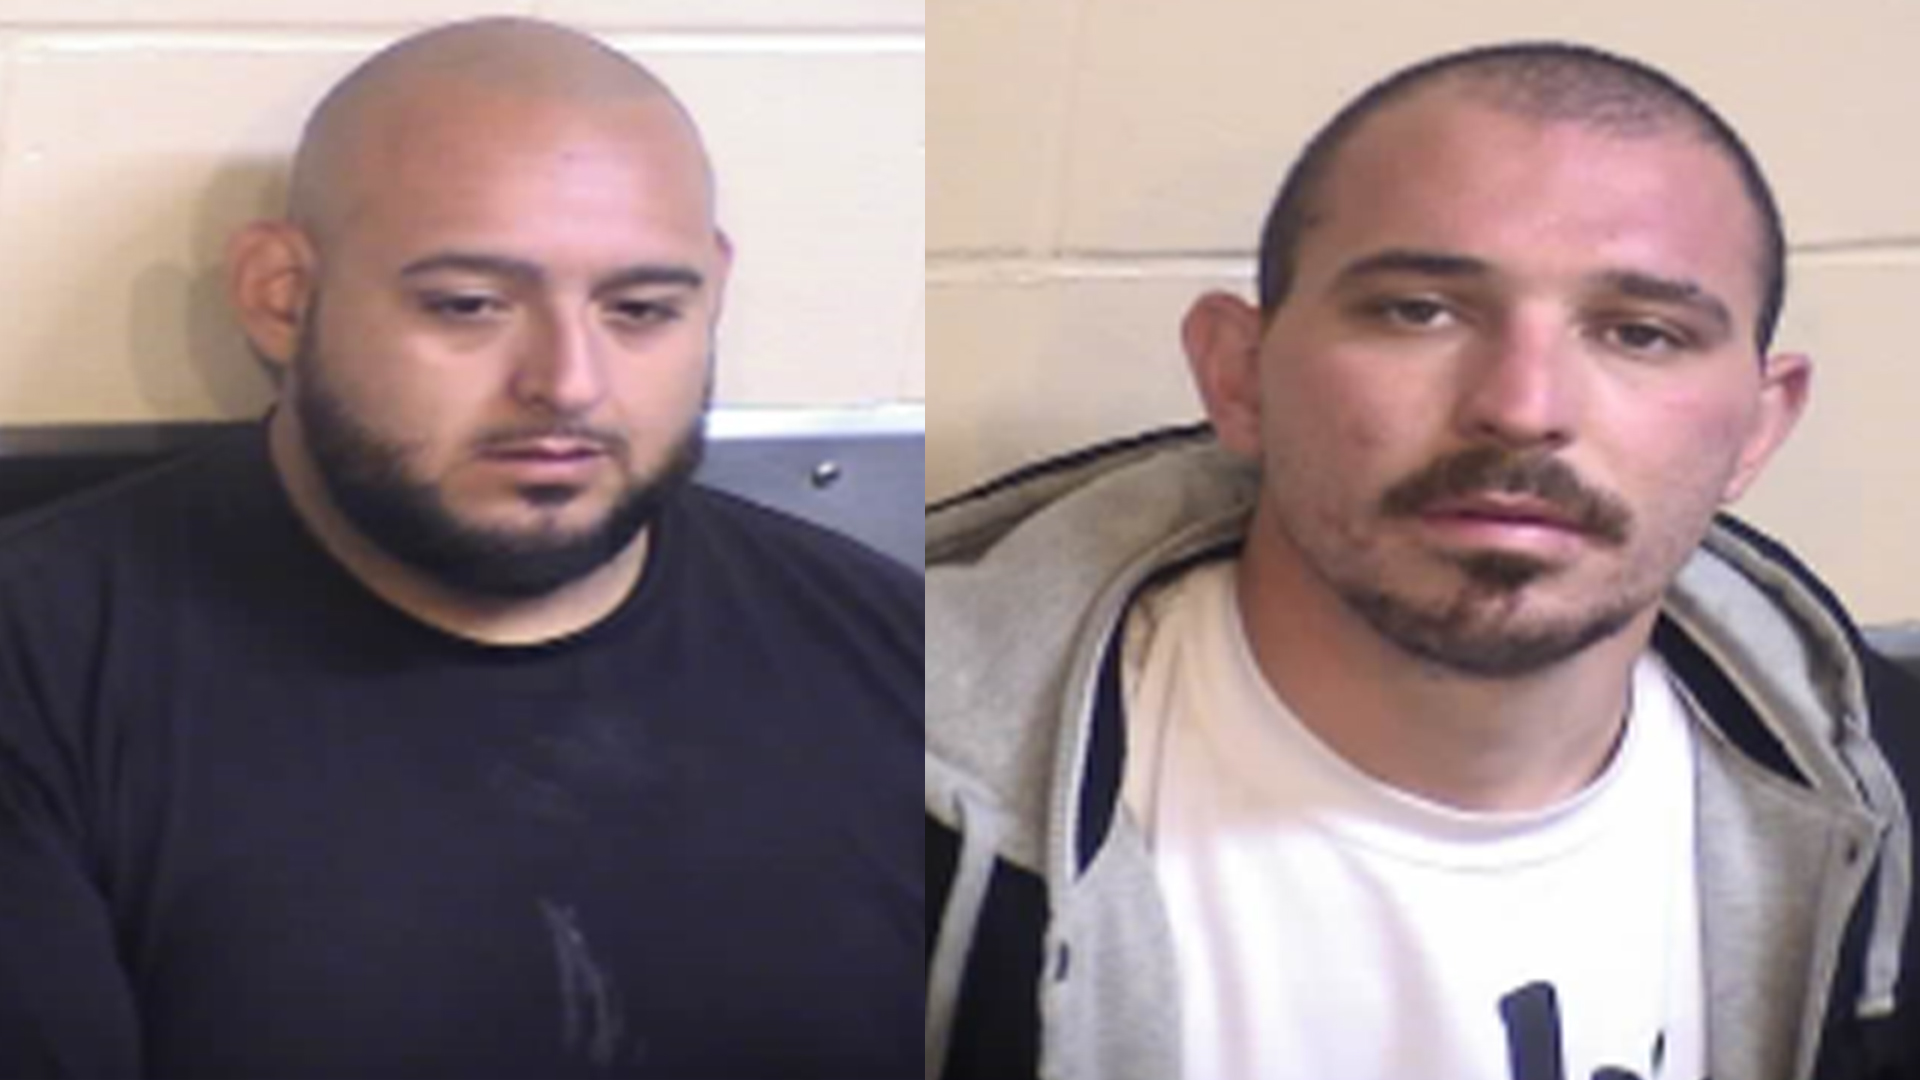 Suspects found with burglary tools after they were tracked down in Clovis, police say